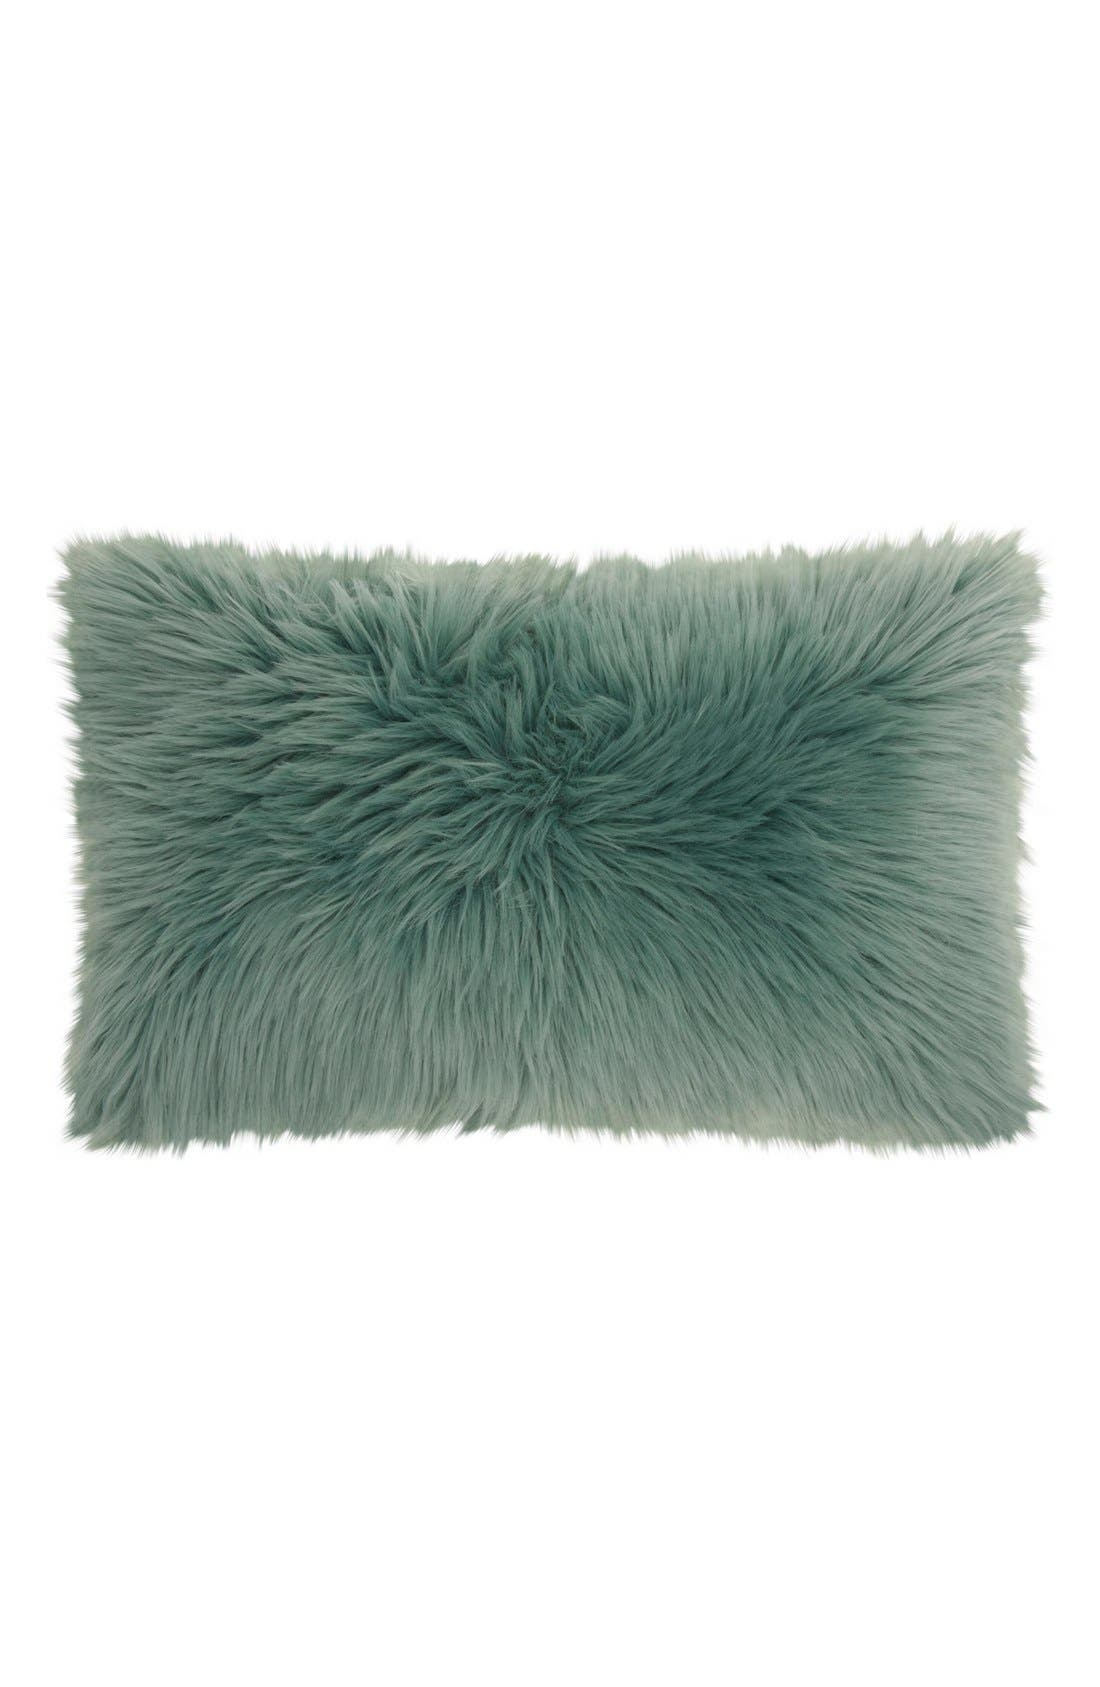 MINA VICTORY 'Sumptuous' Faux Fur Accent Pillow